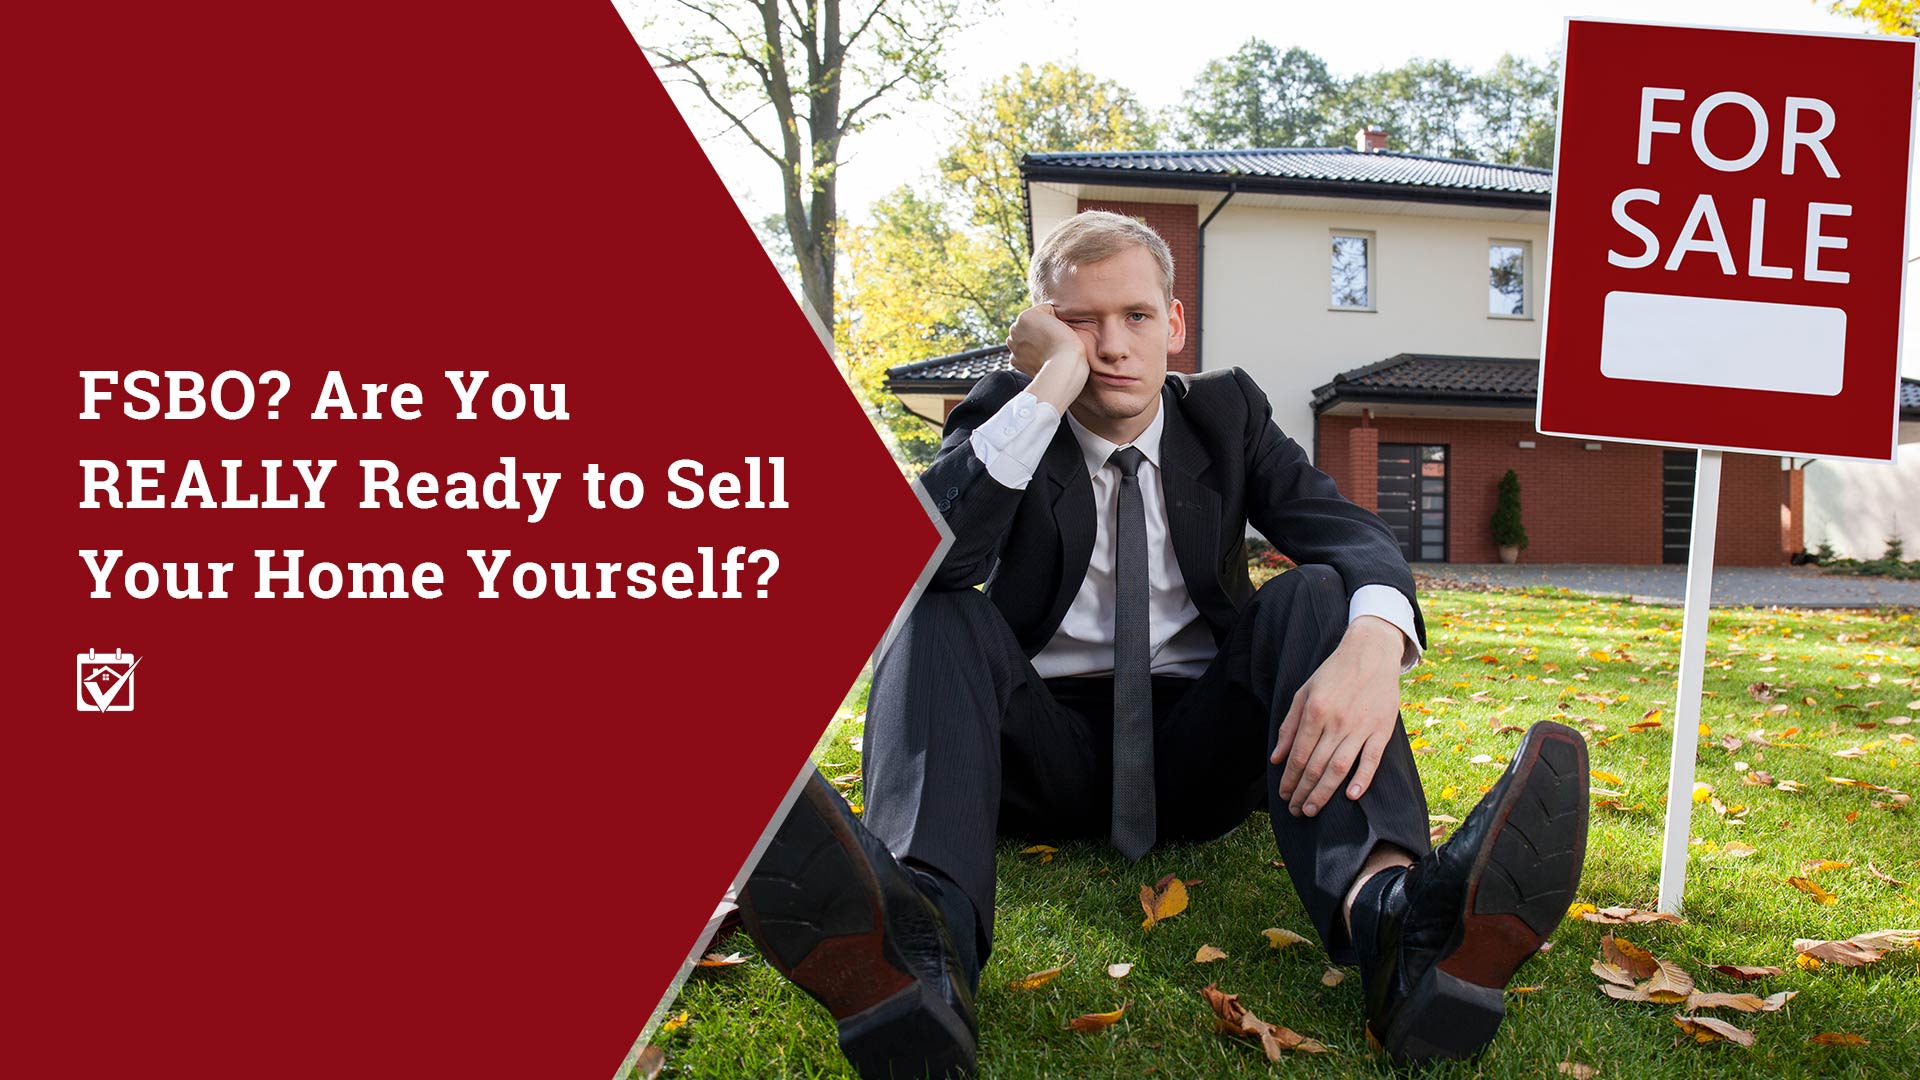 FSBO? Are You REALLY Ready to Sell Your Home Yourself?